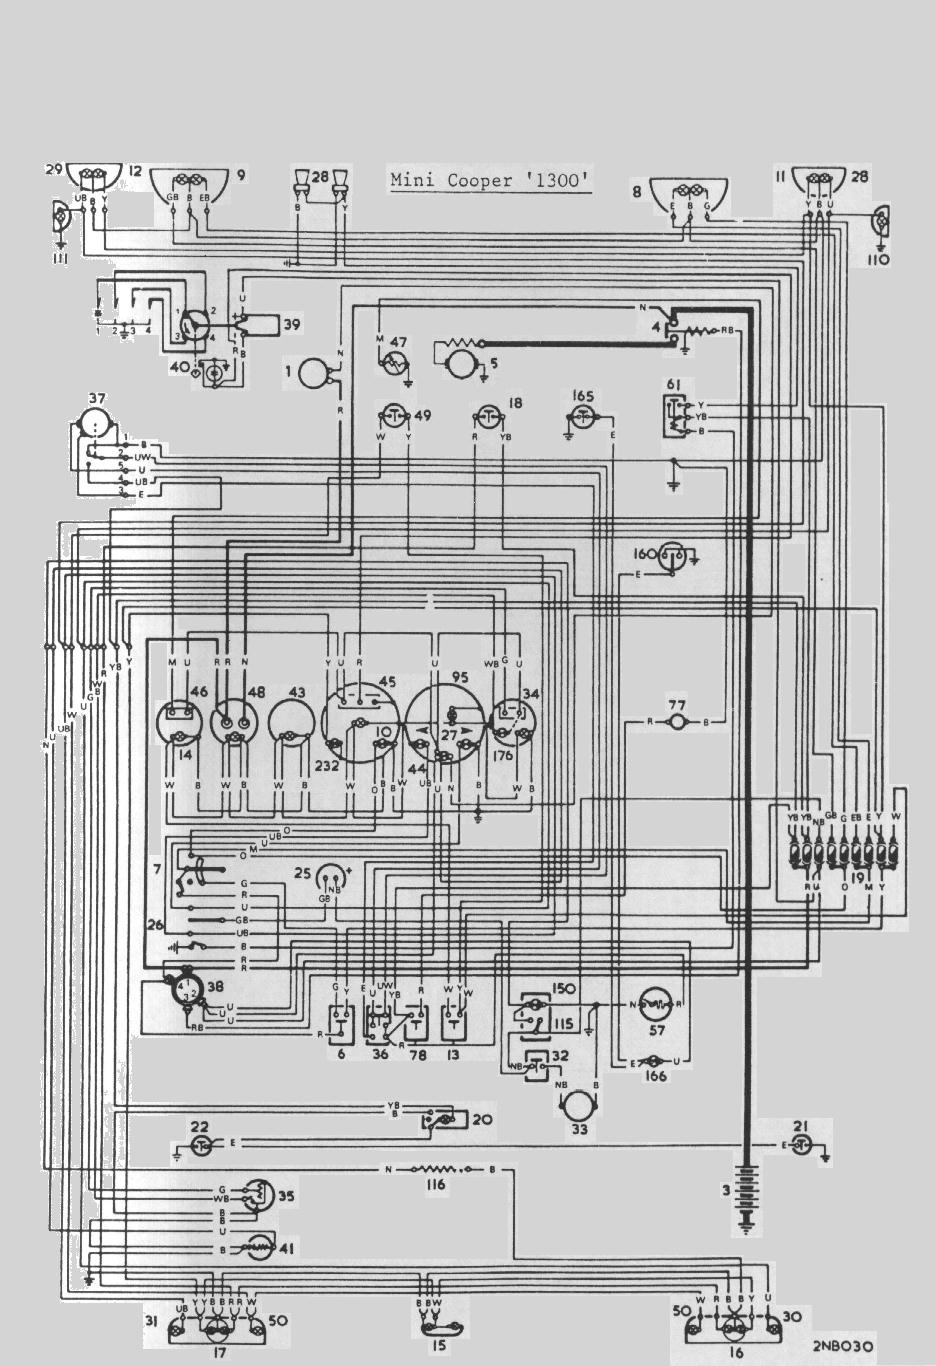 Cooper Switch Wiring Diagram Wiring Key And Diagrams